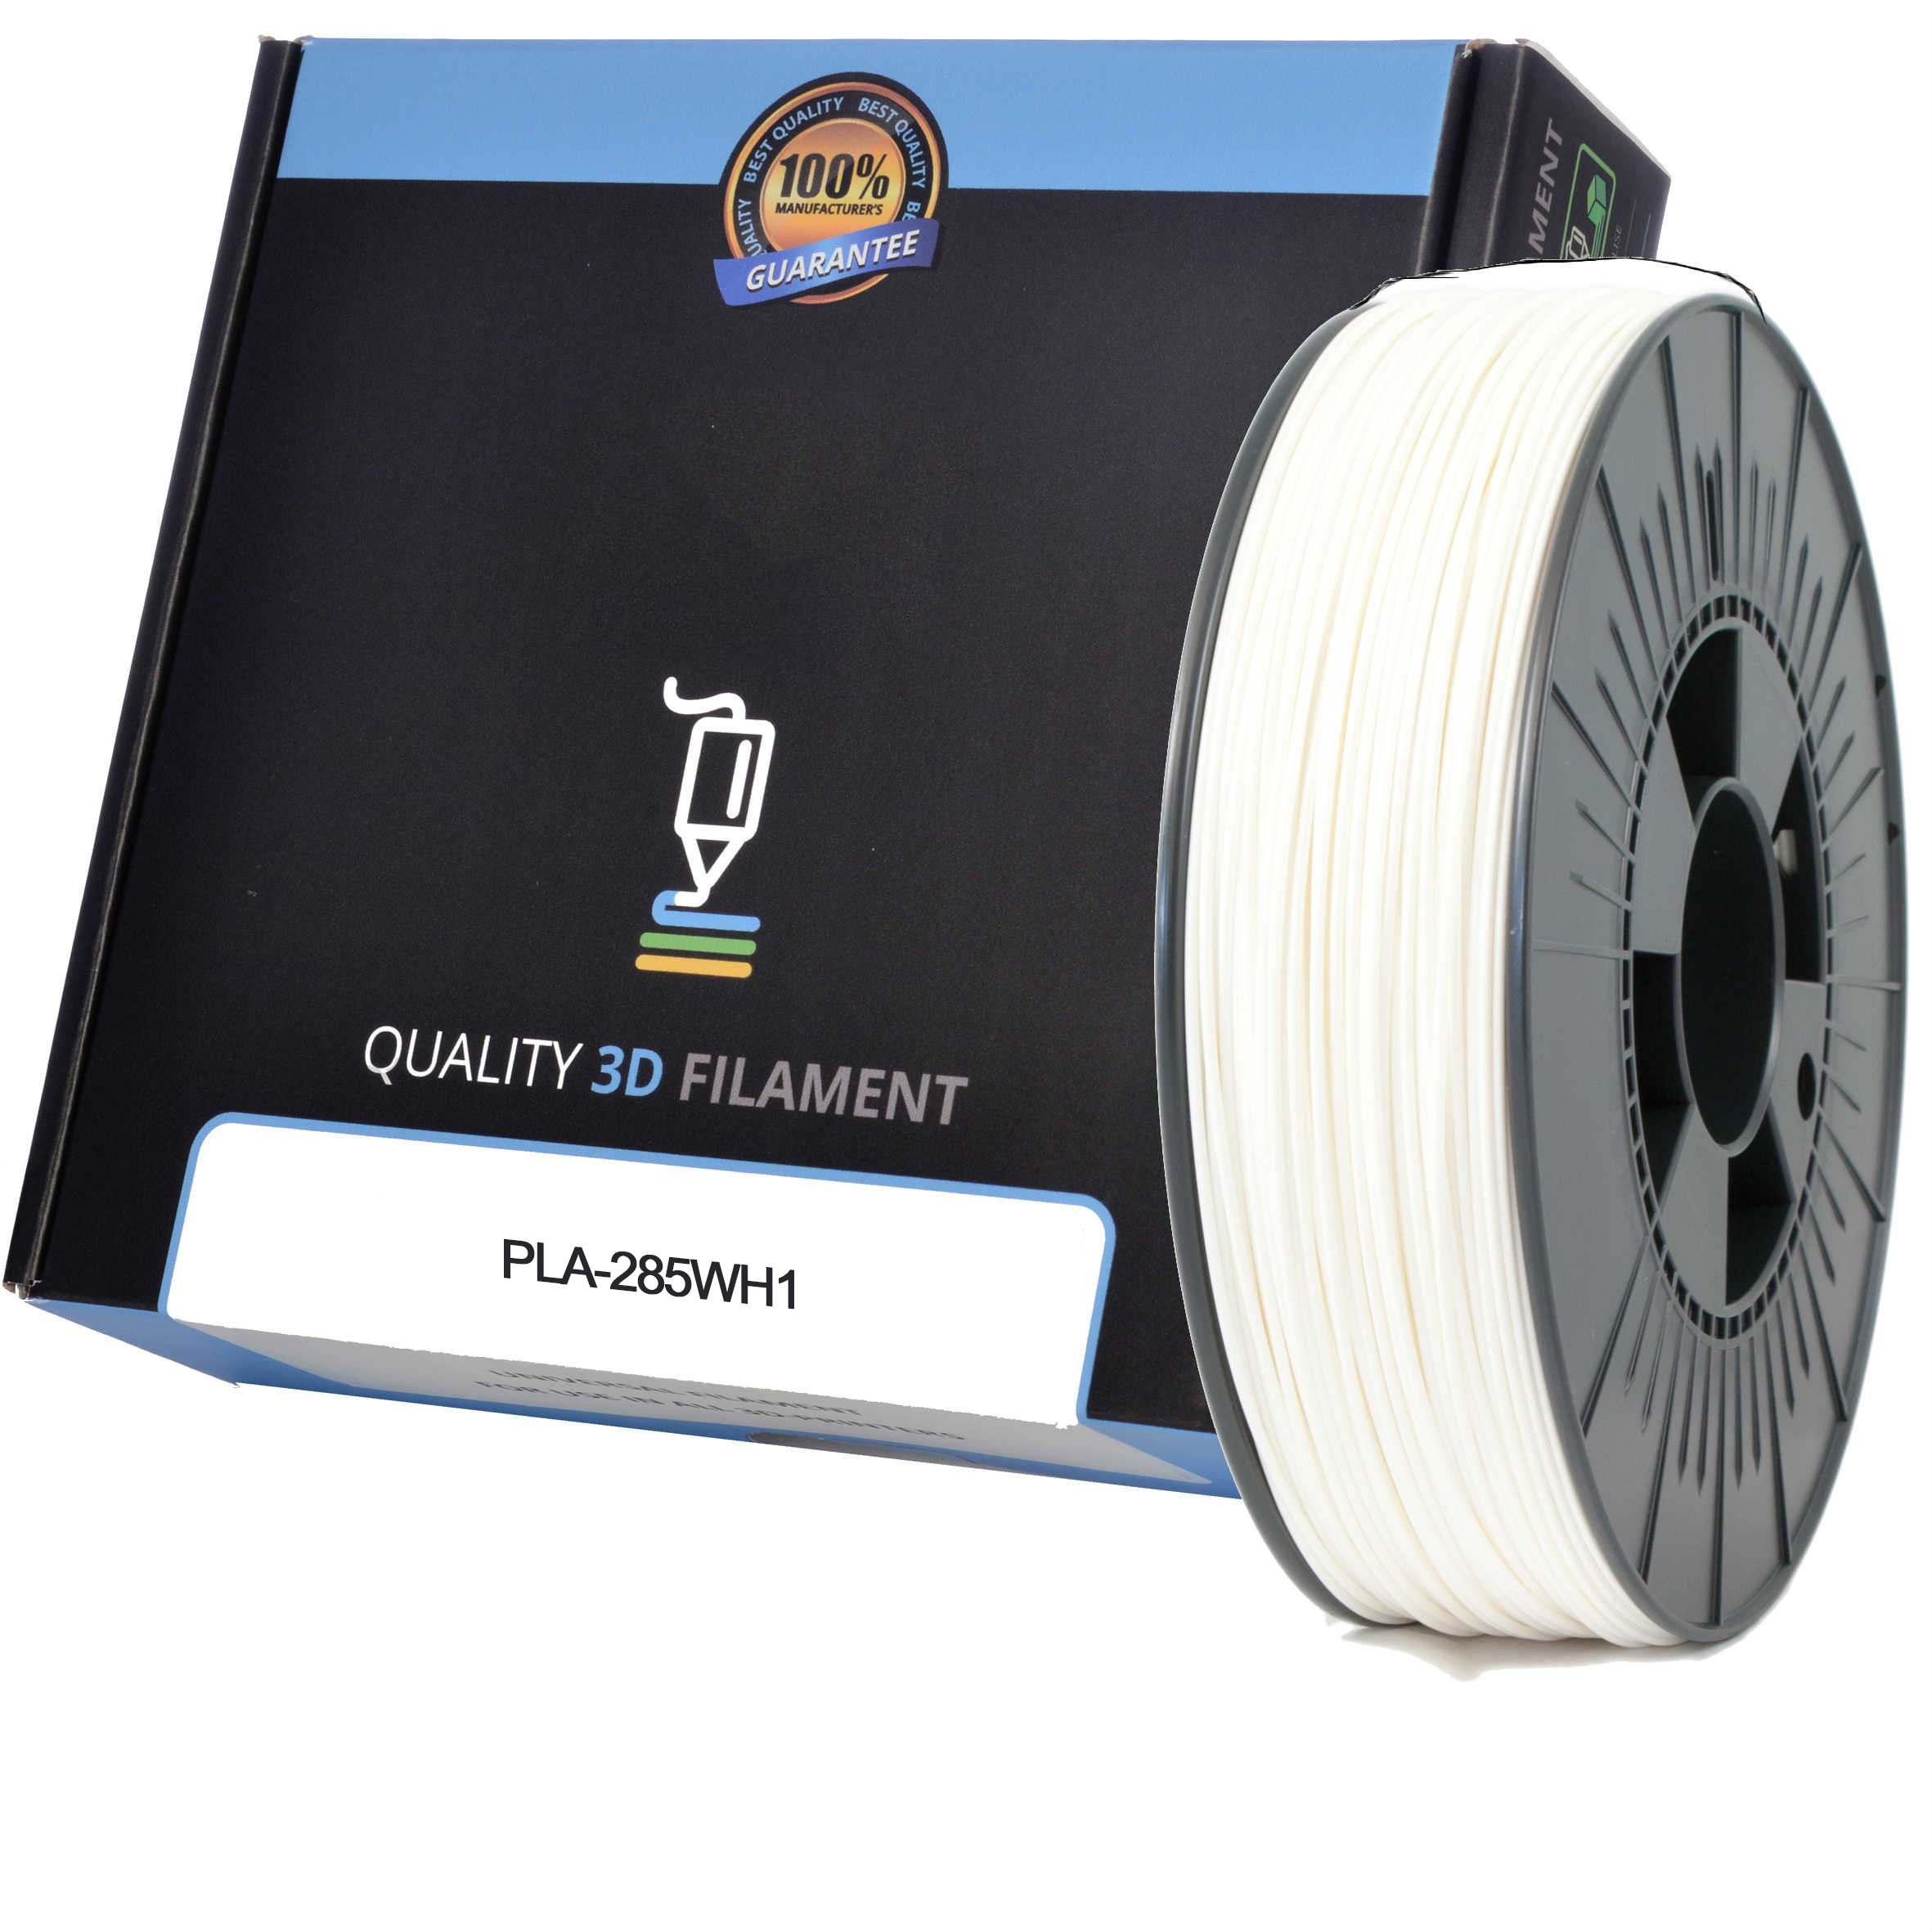 Premium Compatible PLA 2.85mm White 1kg 3D Filament (97-PLA-285WH1)